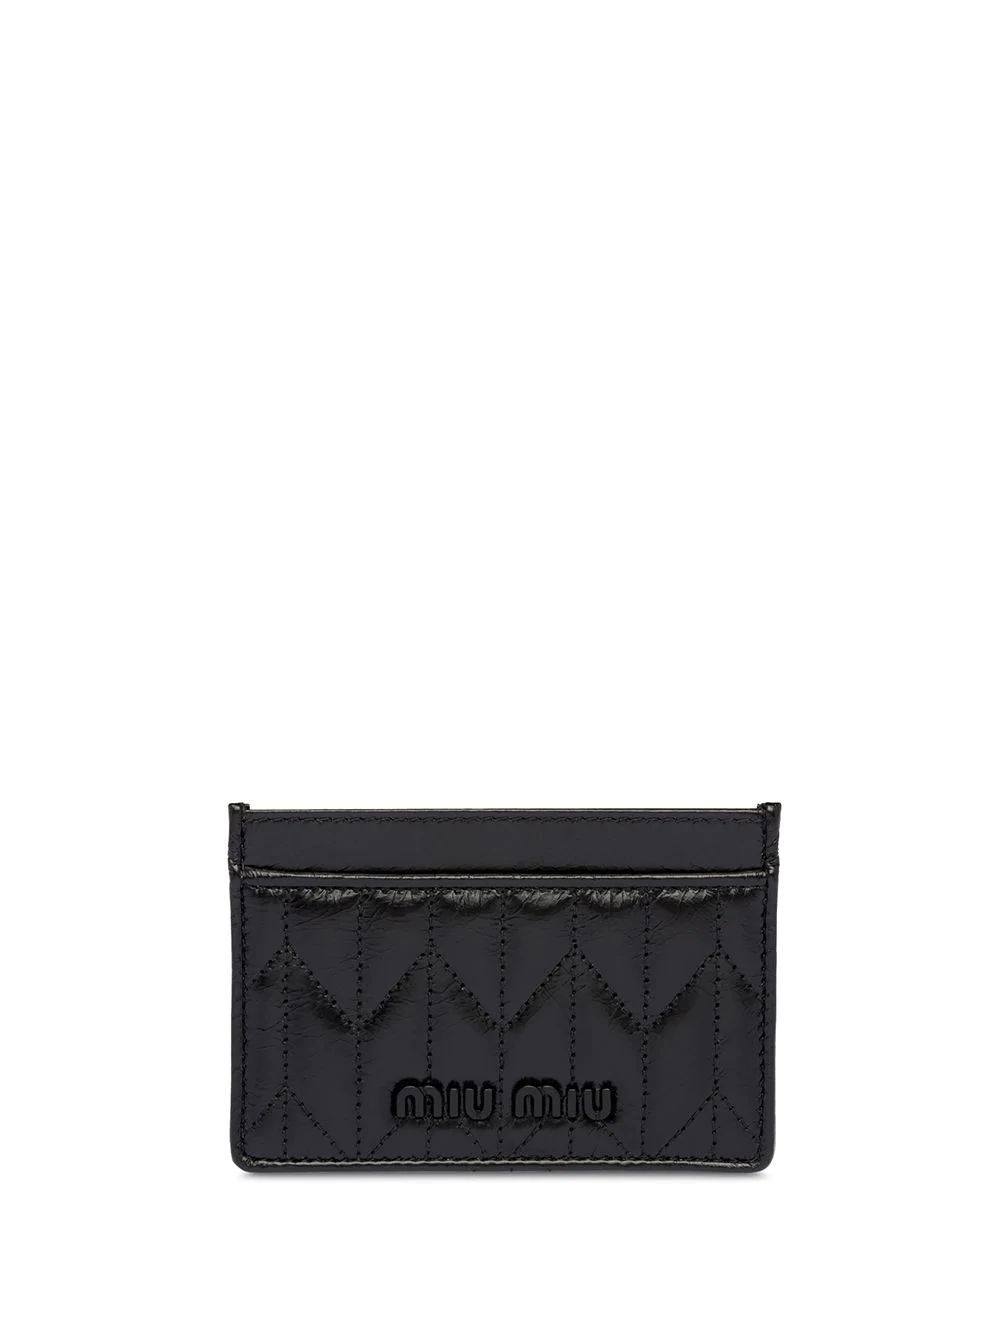 MIU MIU WOMEN'S 5MC2082D6CF0002 BLACK LEATHER CARD HOLDER